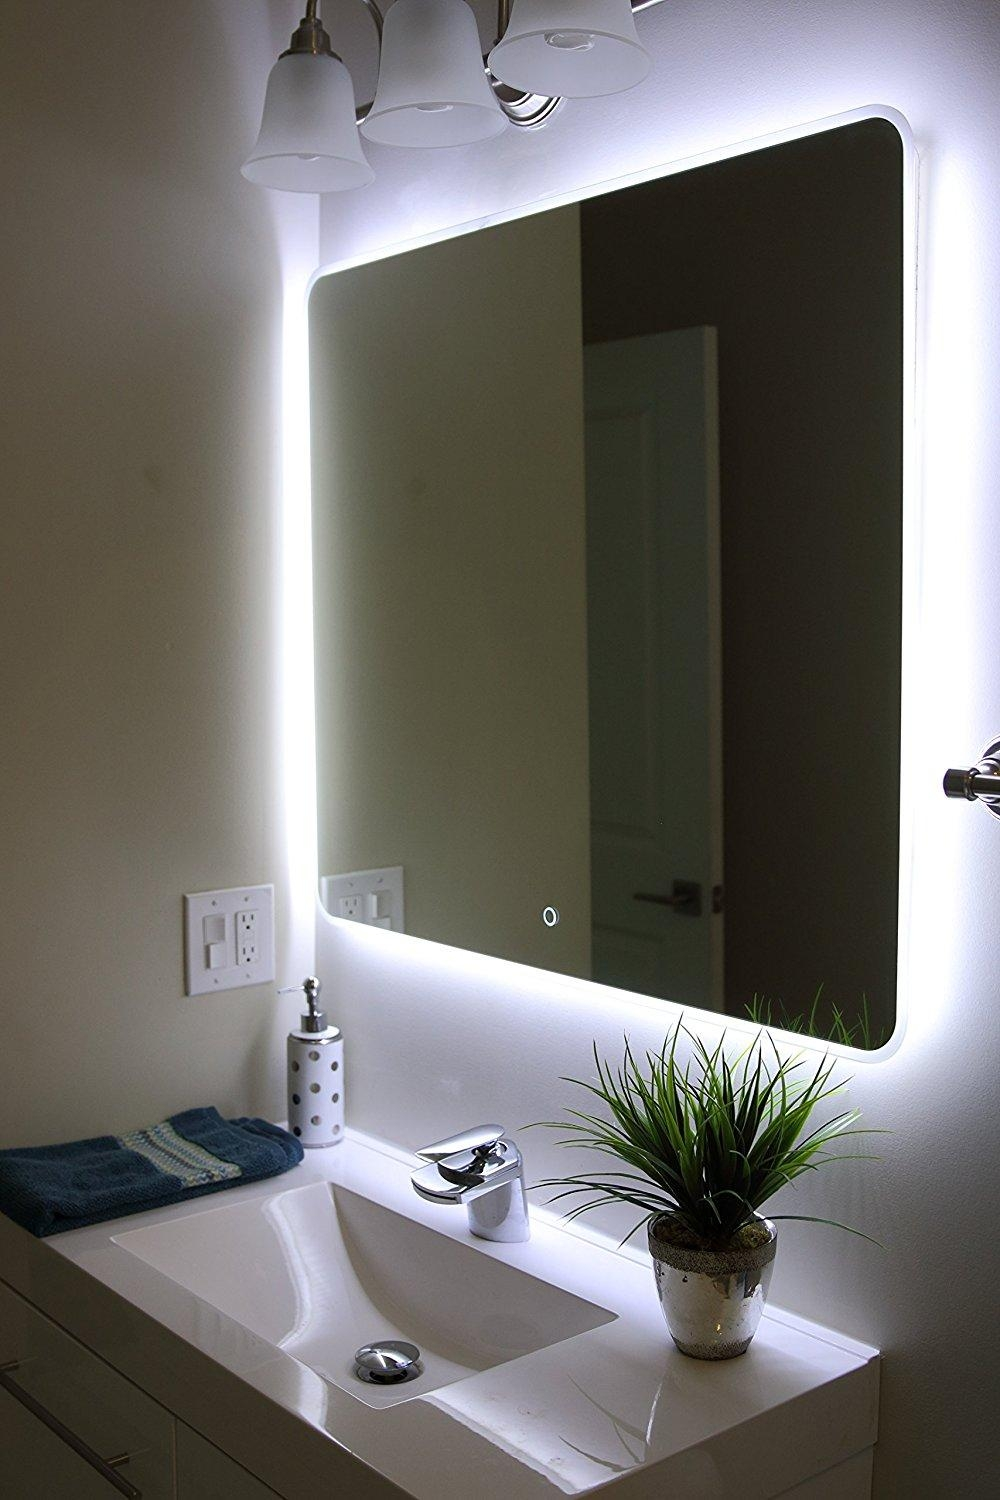 Bathroom : Lighted Bathroom Mirror 26 Shining Inspiration Light Up Pertaining To Lights For Bathroom Mirrors (View 5 of 20)